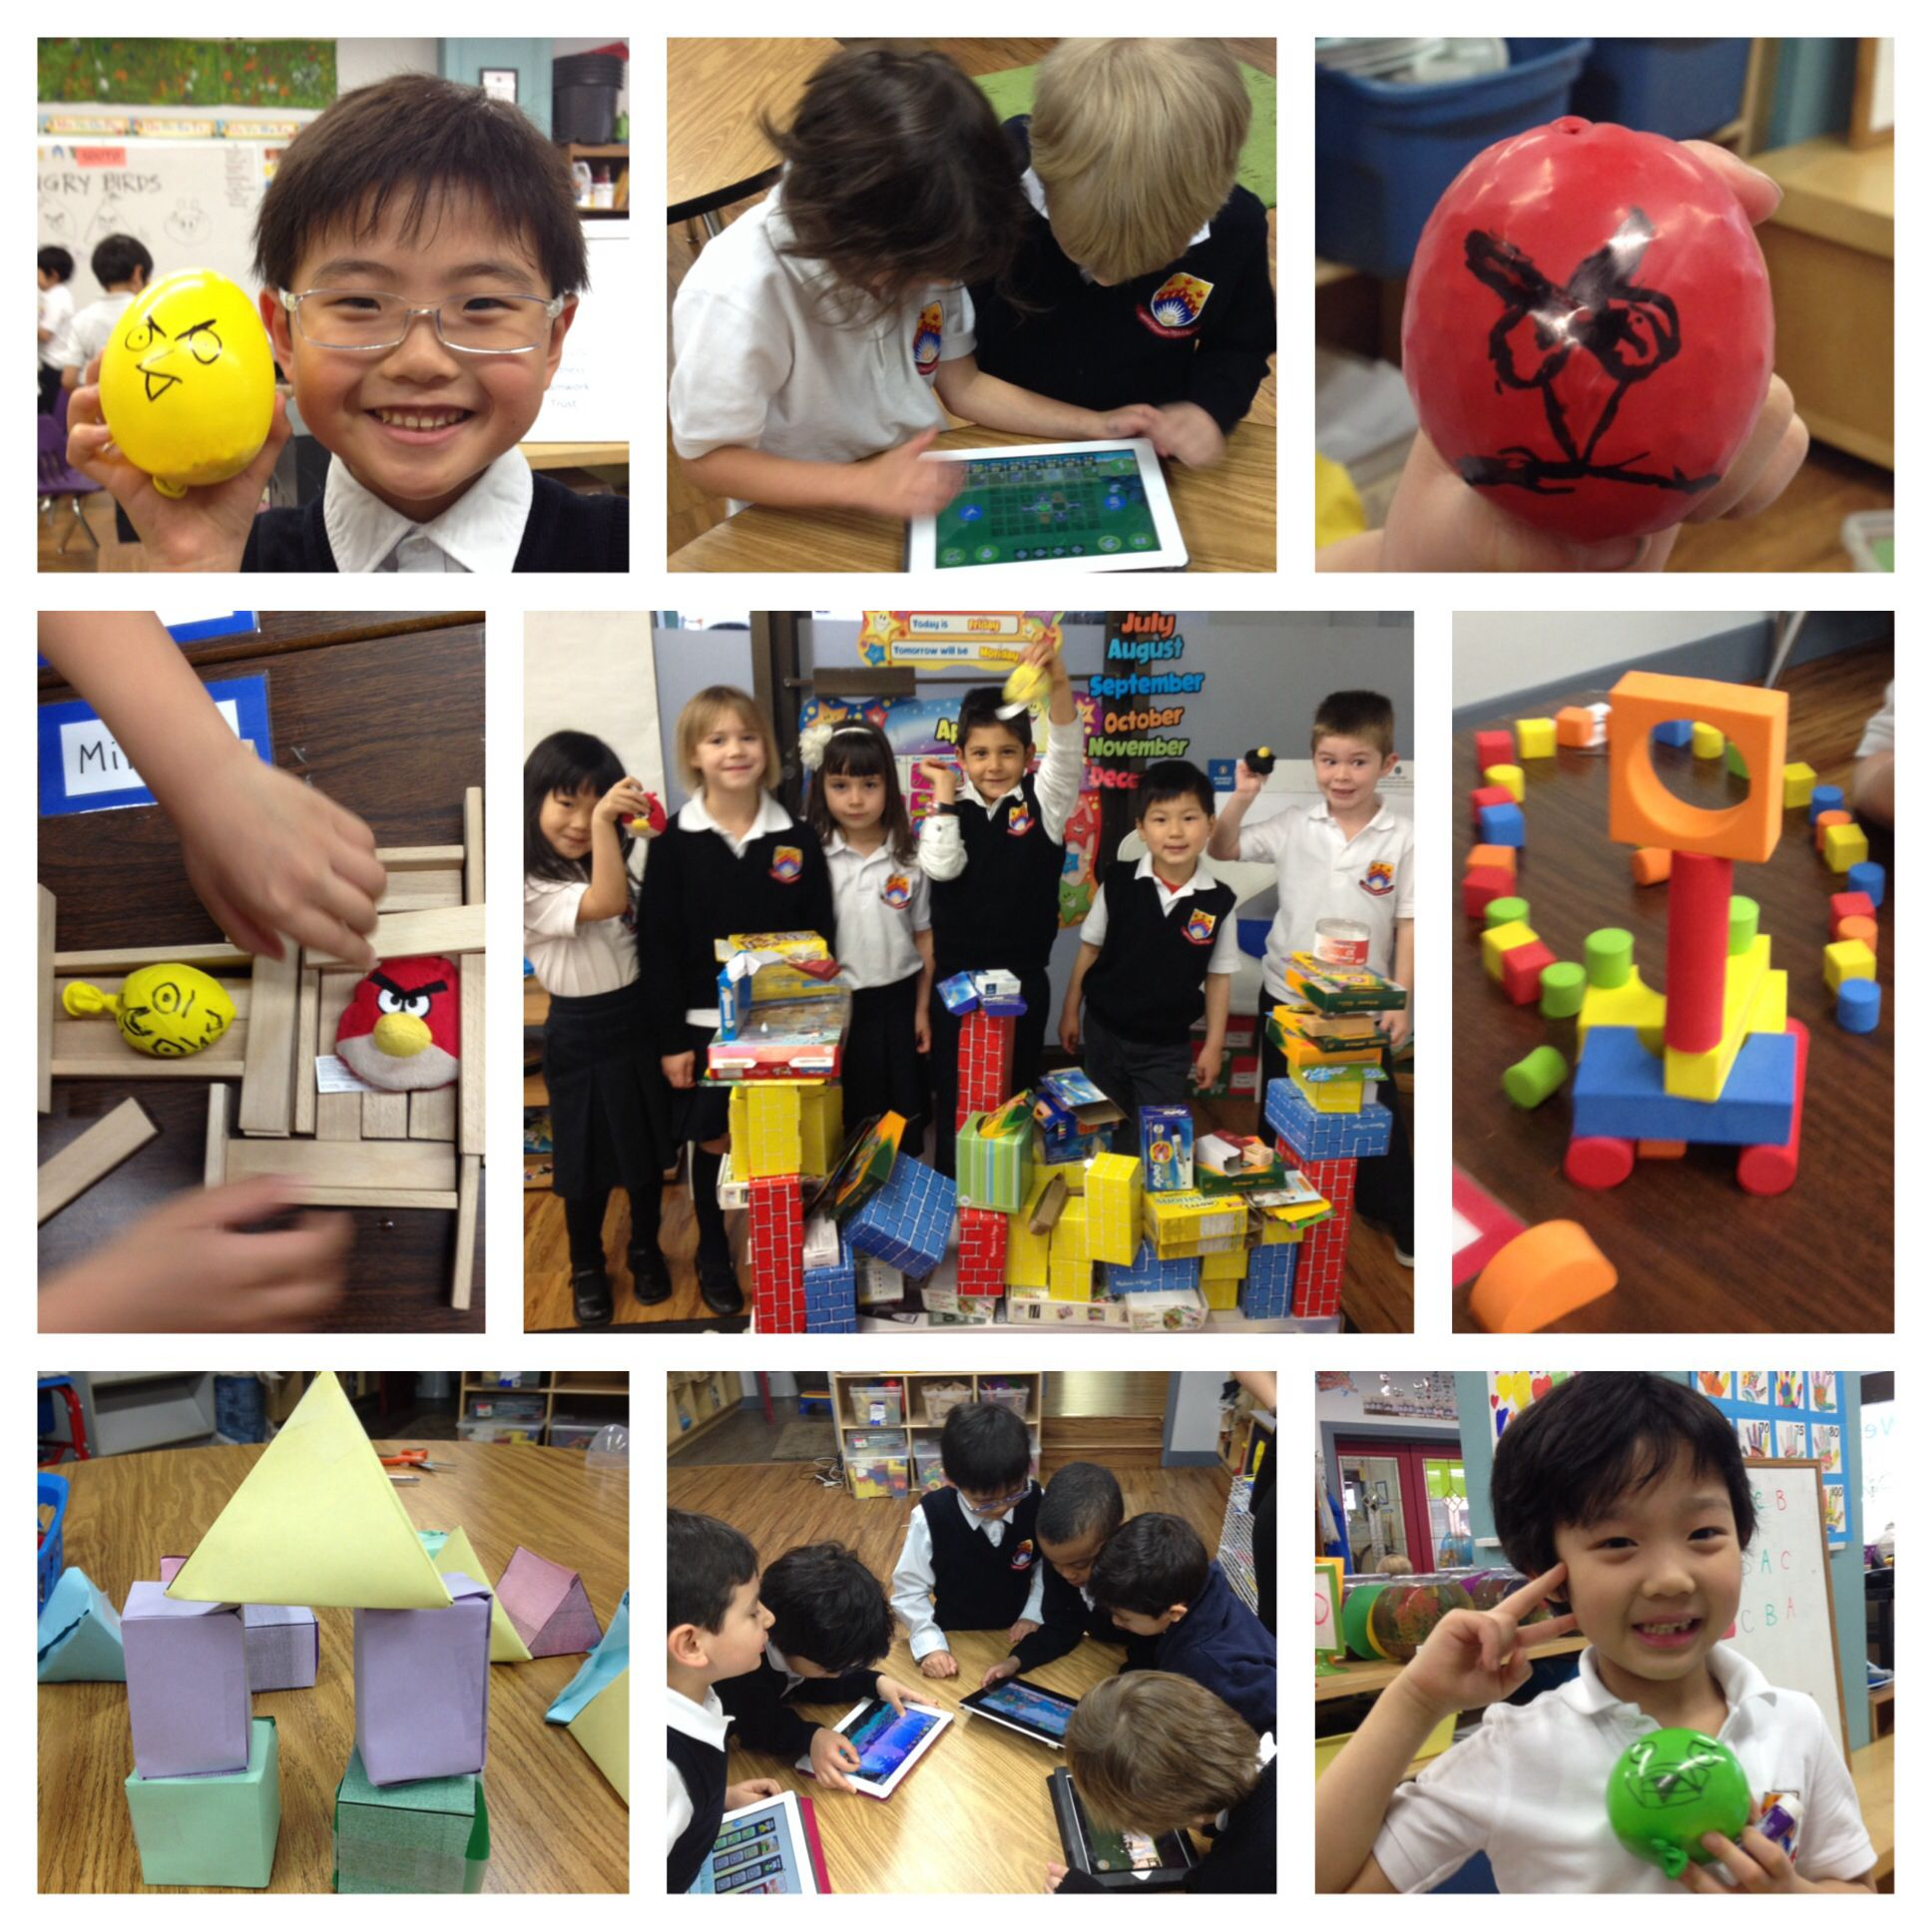 Angry Birds Structures